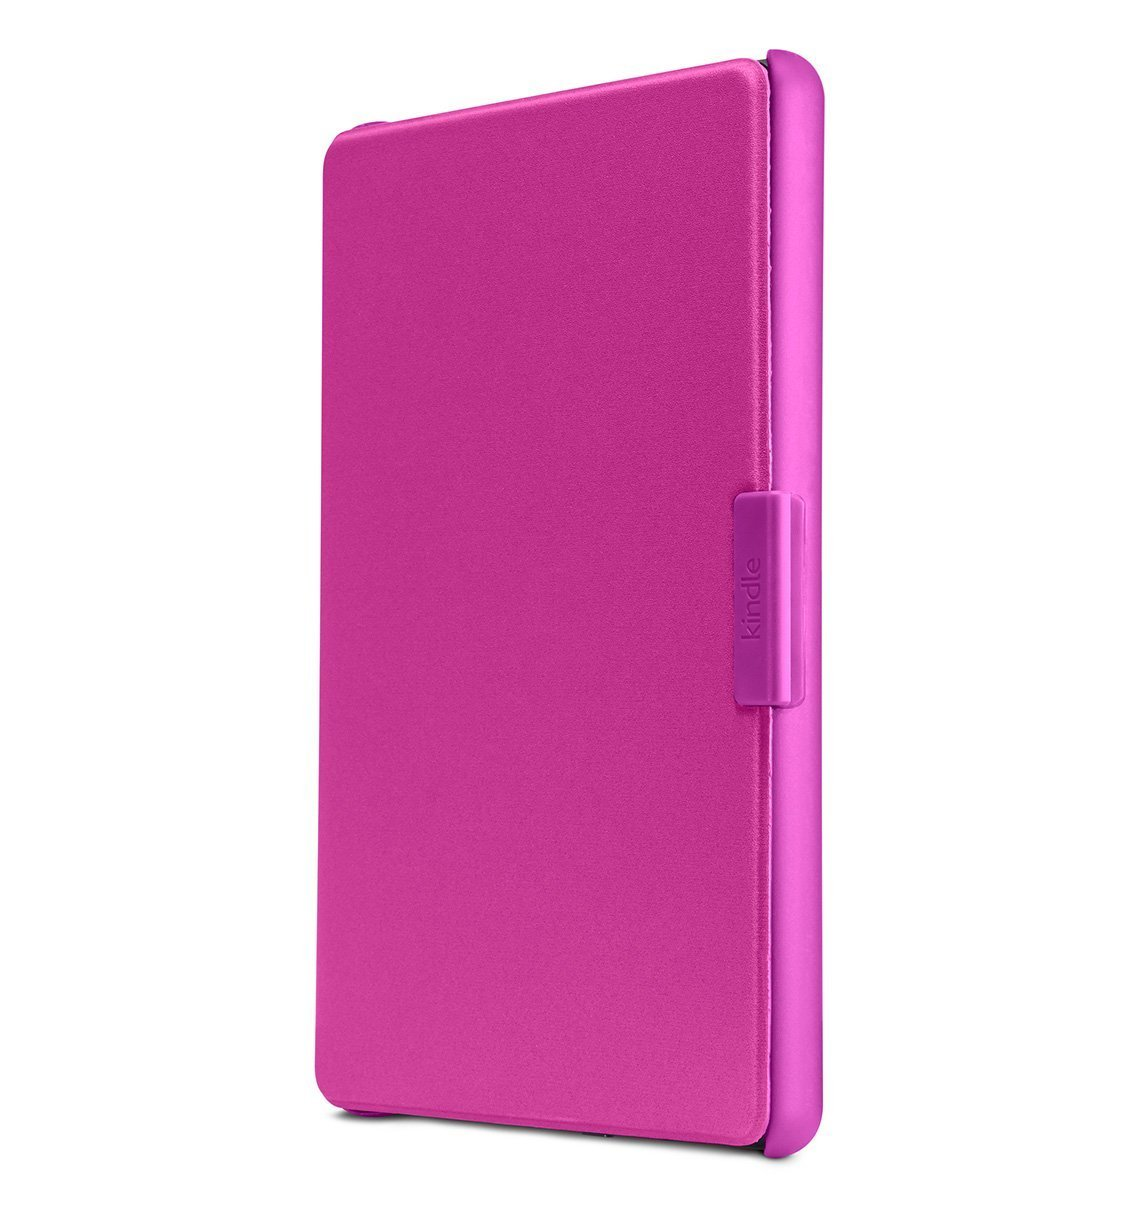 Чехол обложка Amazon Cover Case for All-New Kindle 8 (2016) Magenta. Фото N4